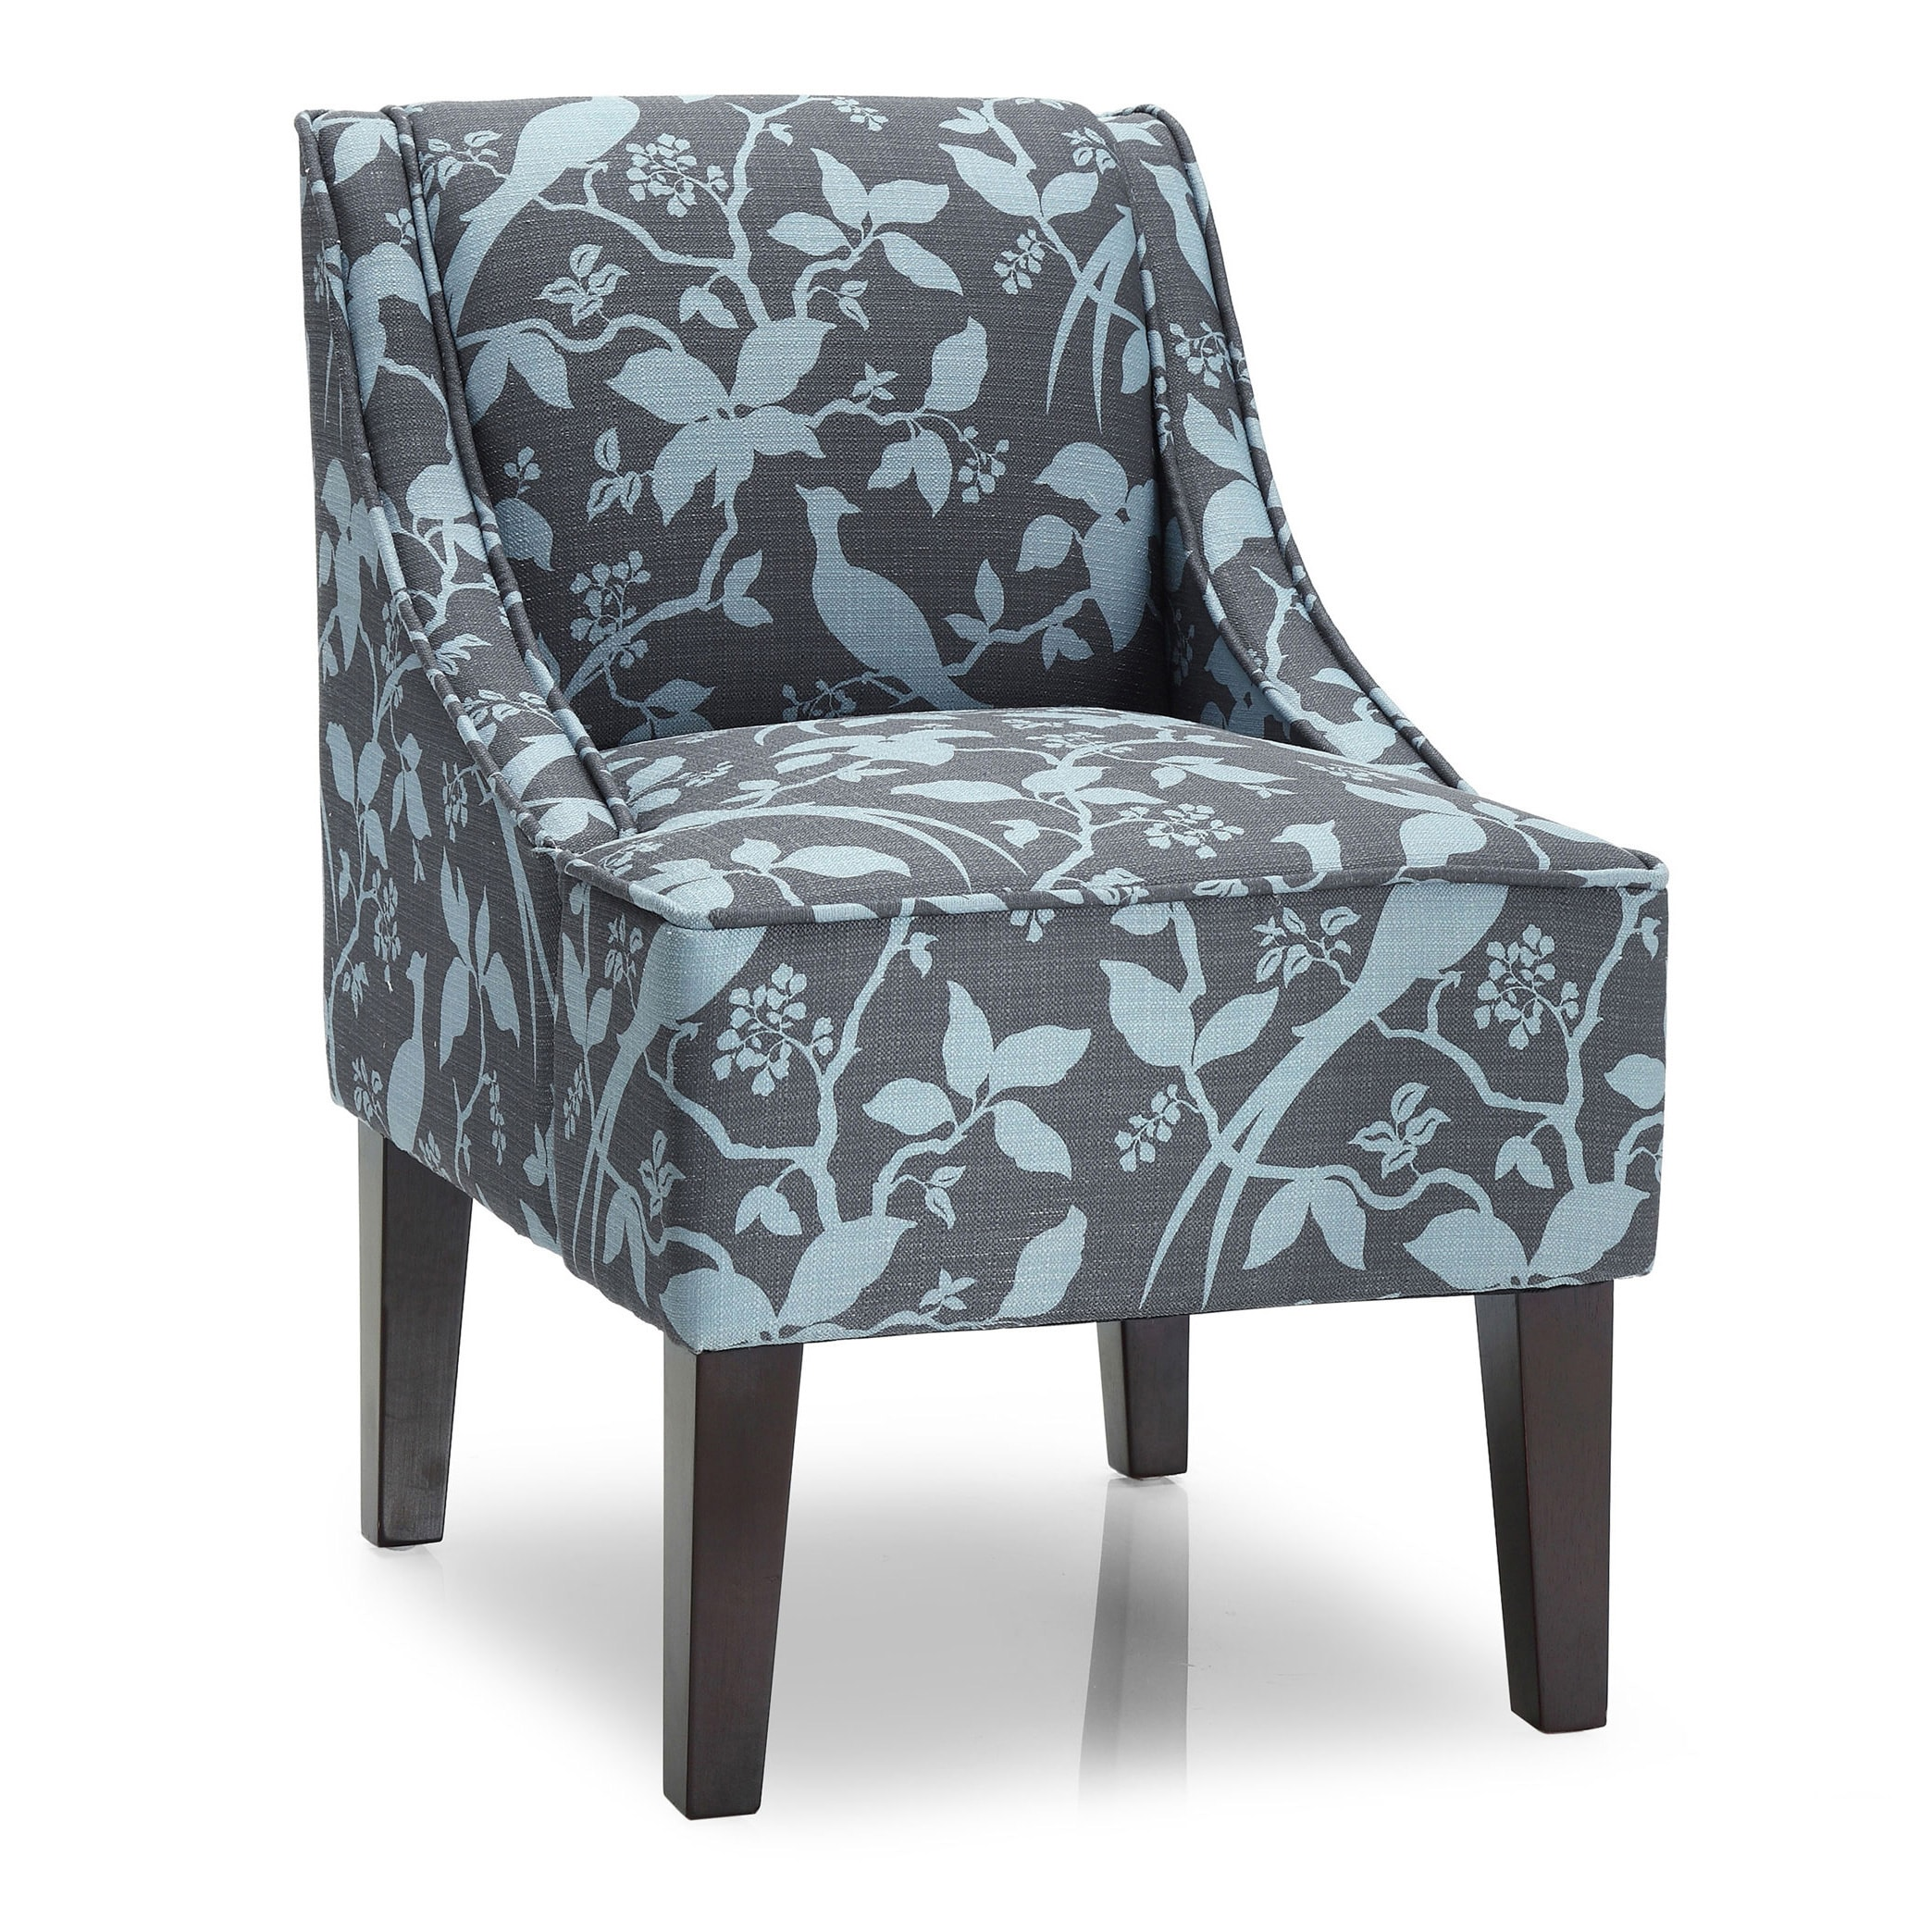 Cool Porch Den Debbie Swoop Floral Accent Chair Gmtry Best Dining Table And Chair Ideas Images Gmtryco